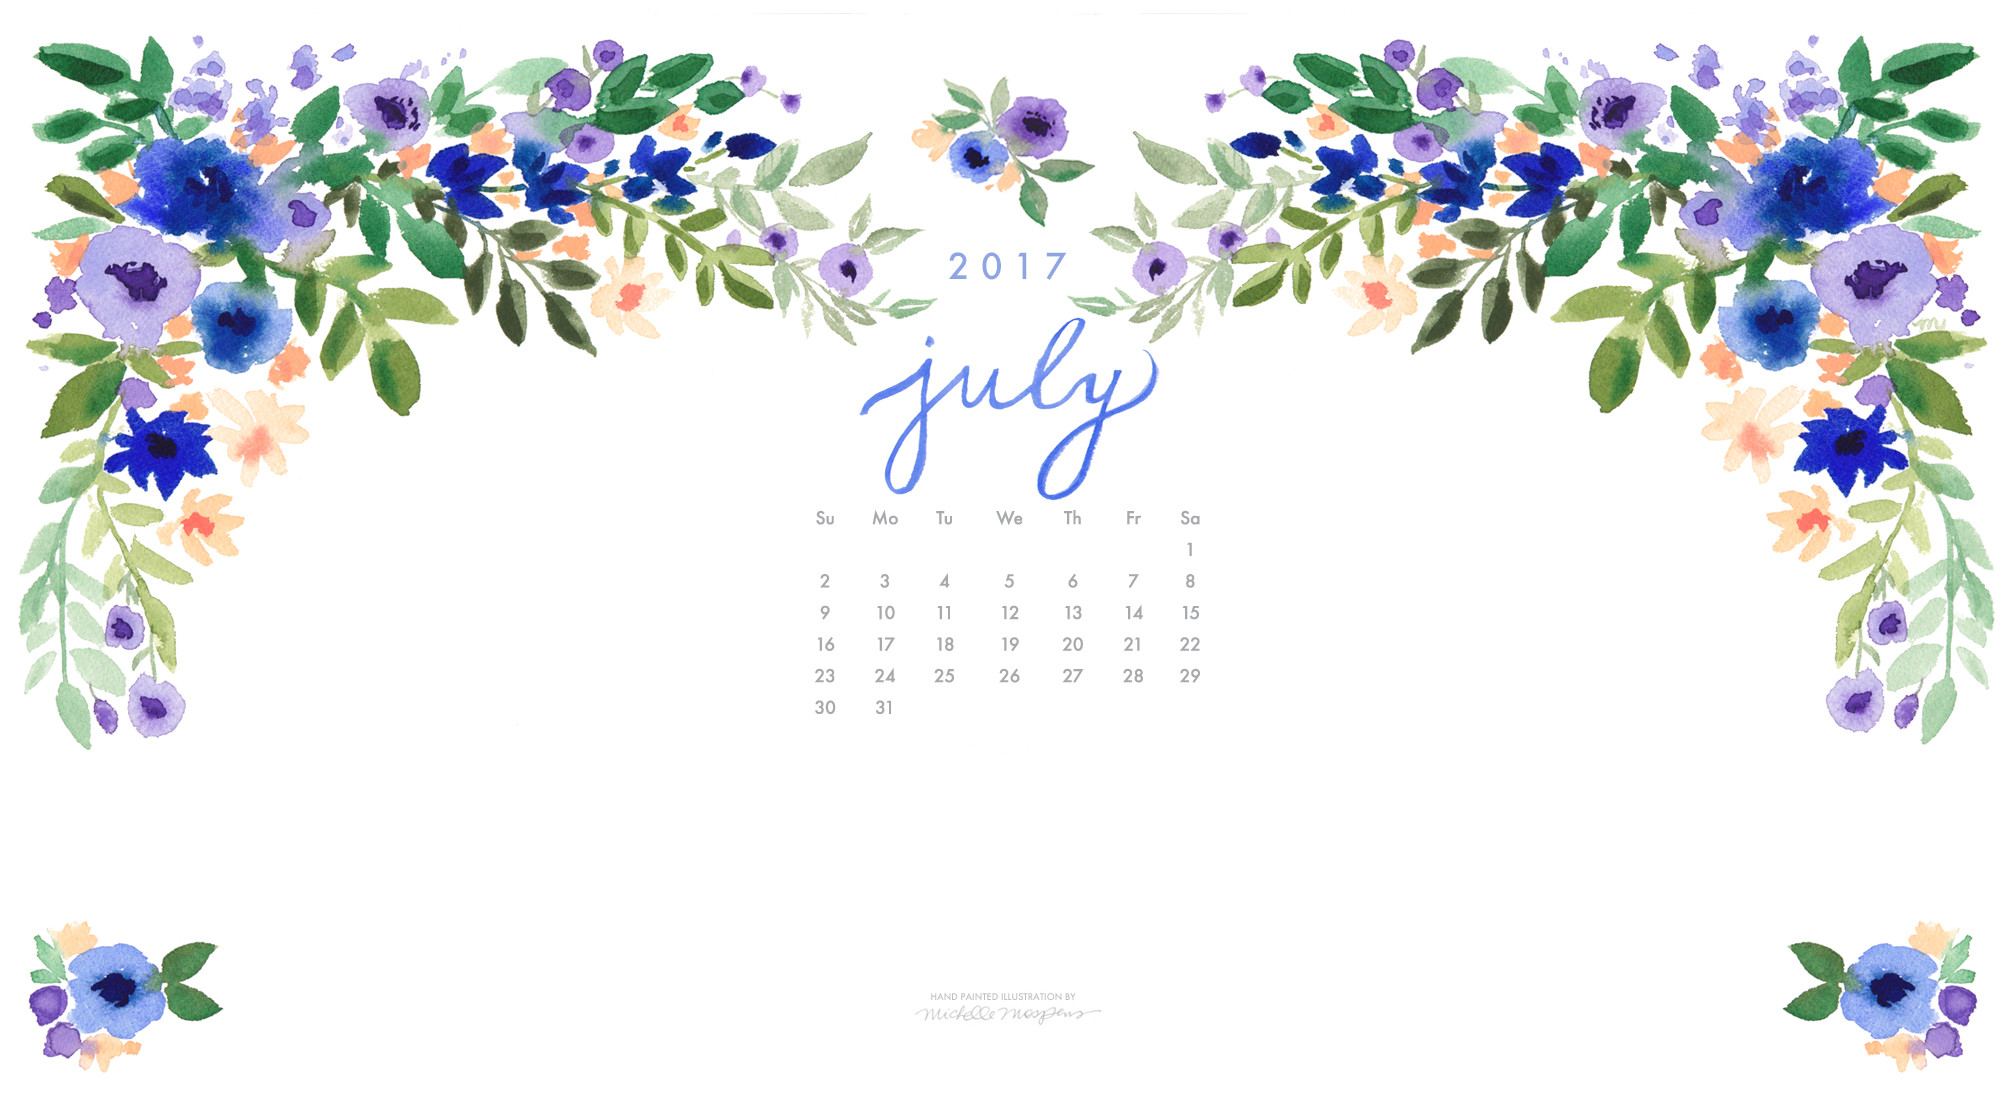 2016x1100 Pretty posy watercolor July 2017 calendar wallpaper for your computer. 100%  original art by